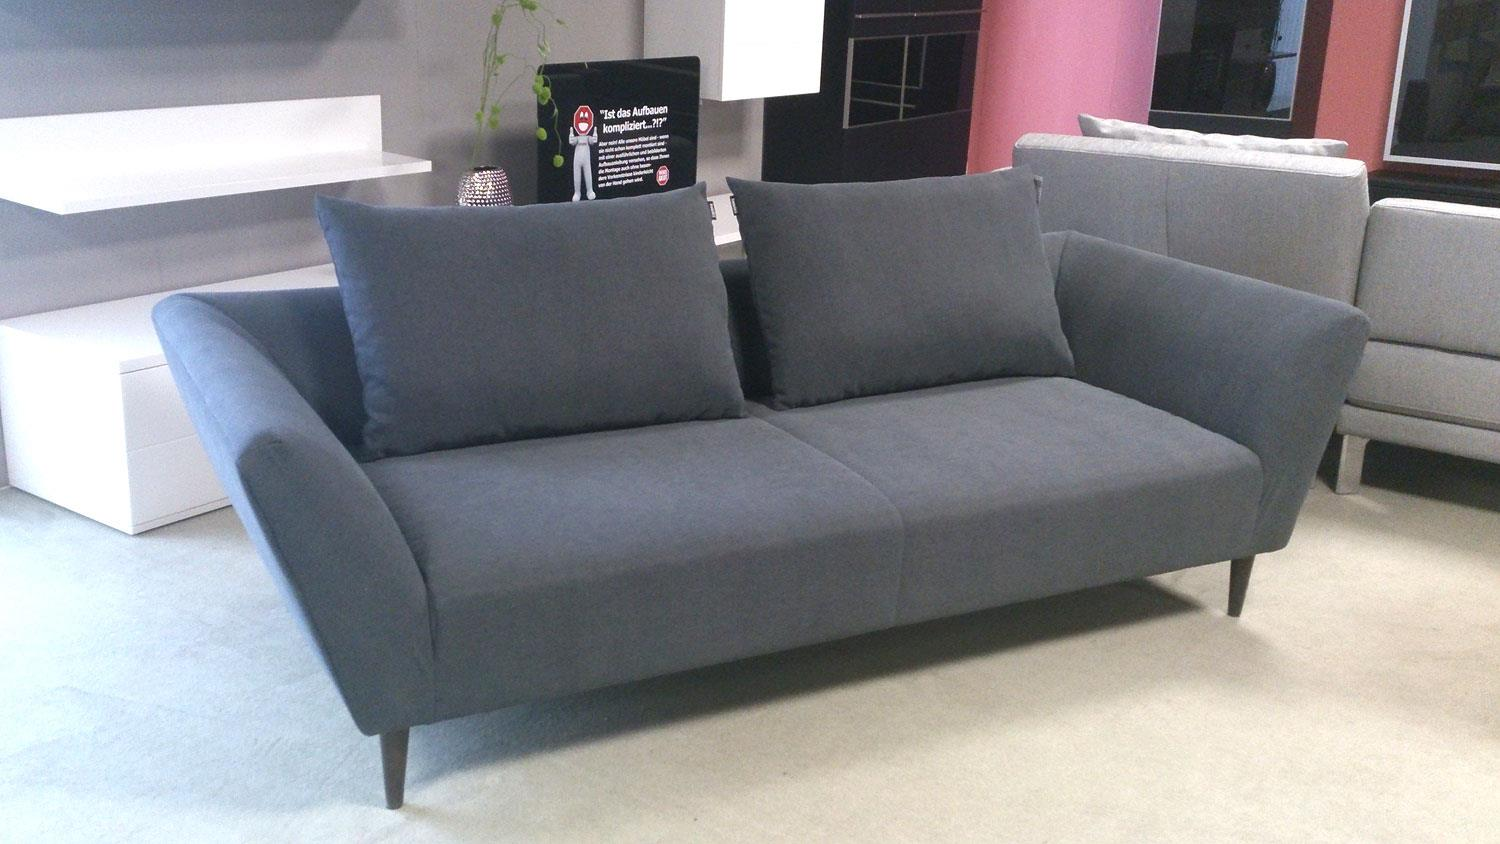 Sofa freistil 176 in grahpitgrauem stoff mit kissen rolf benz for Couch benz